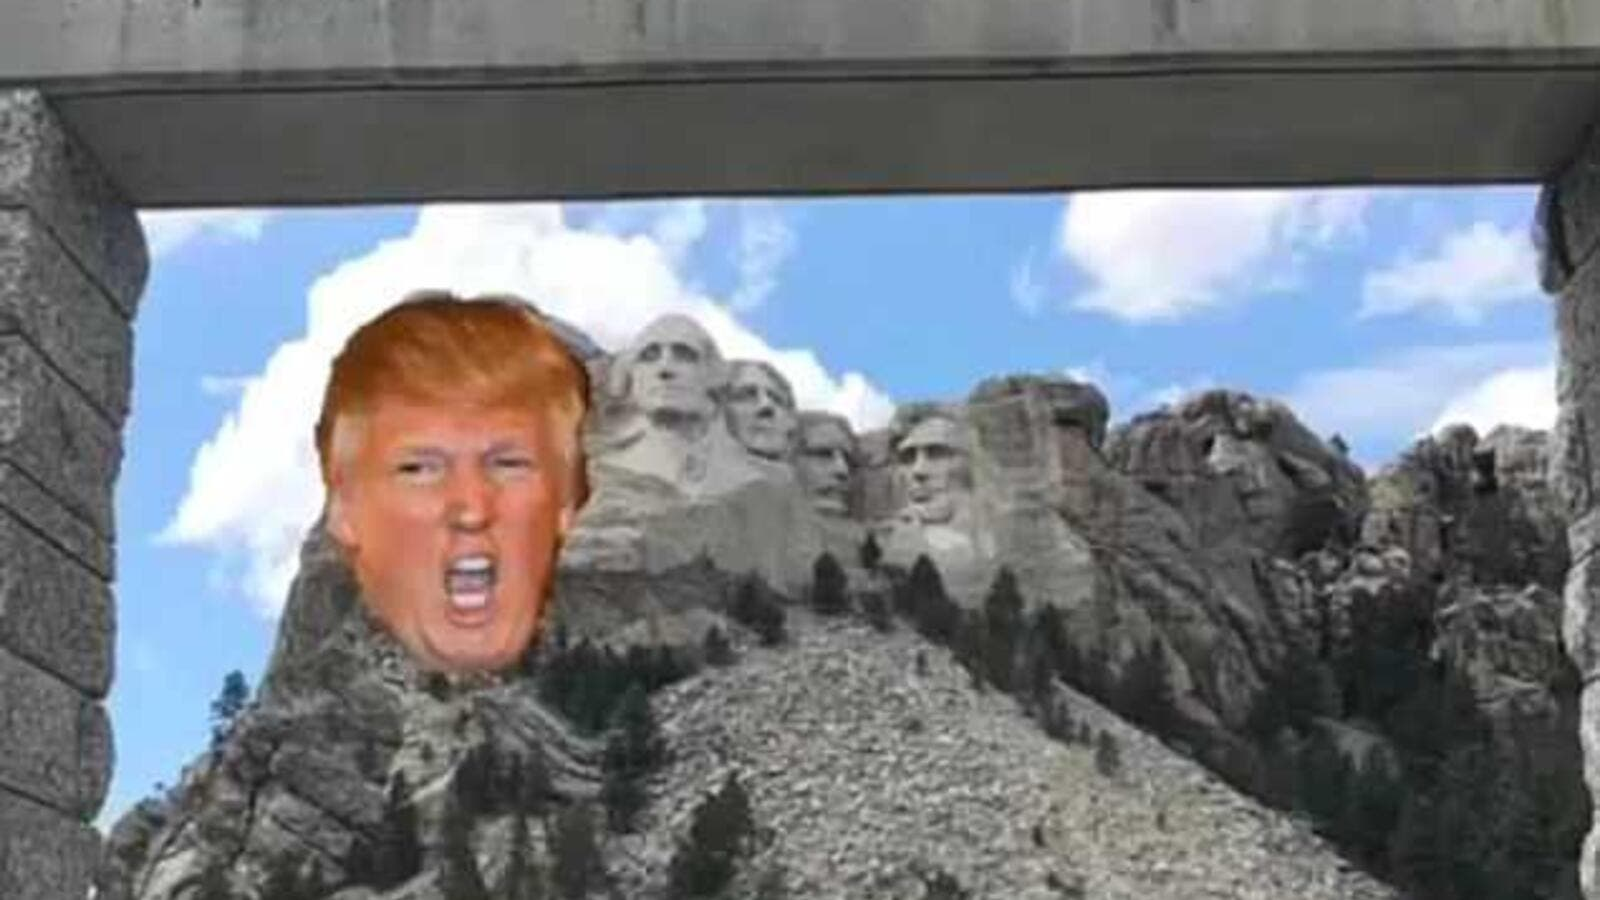 The eldest son of Donald Trump posted an image to his Instagram with the President's head superimposed on Mount Rushmore (Instagram)